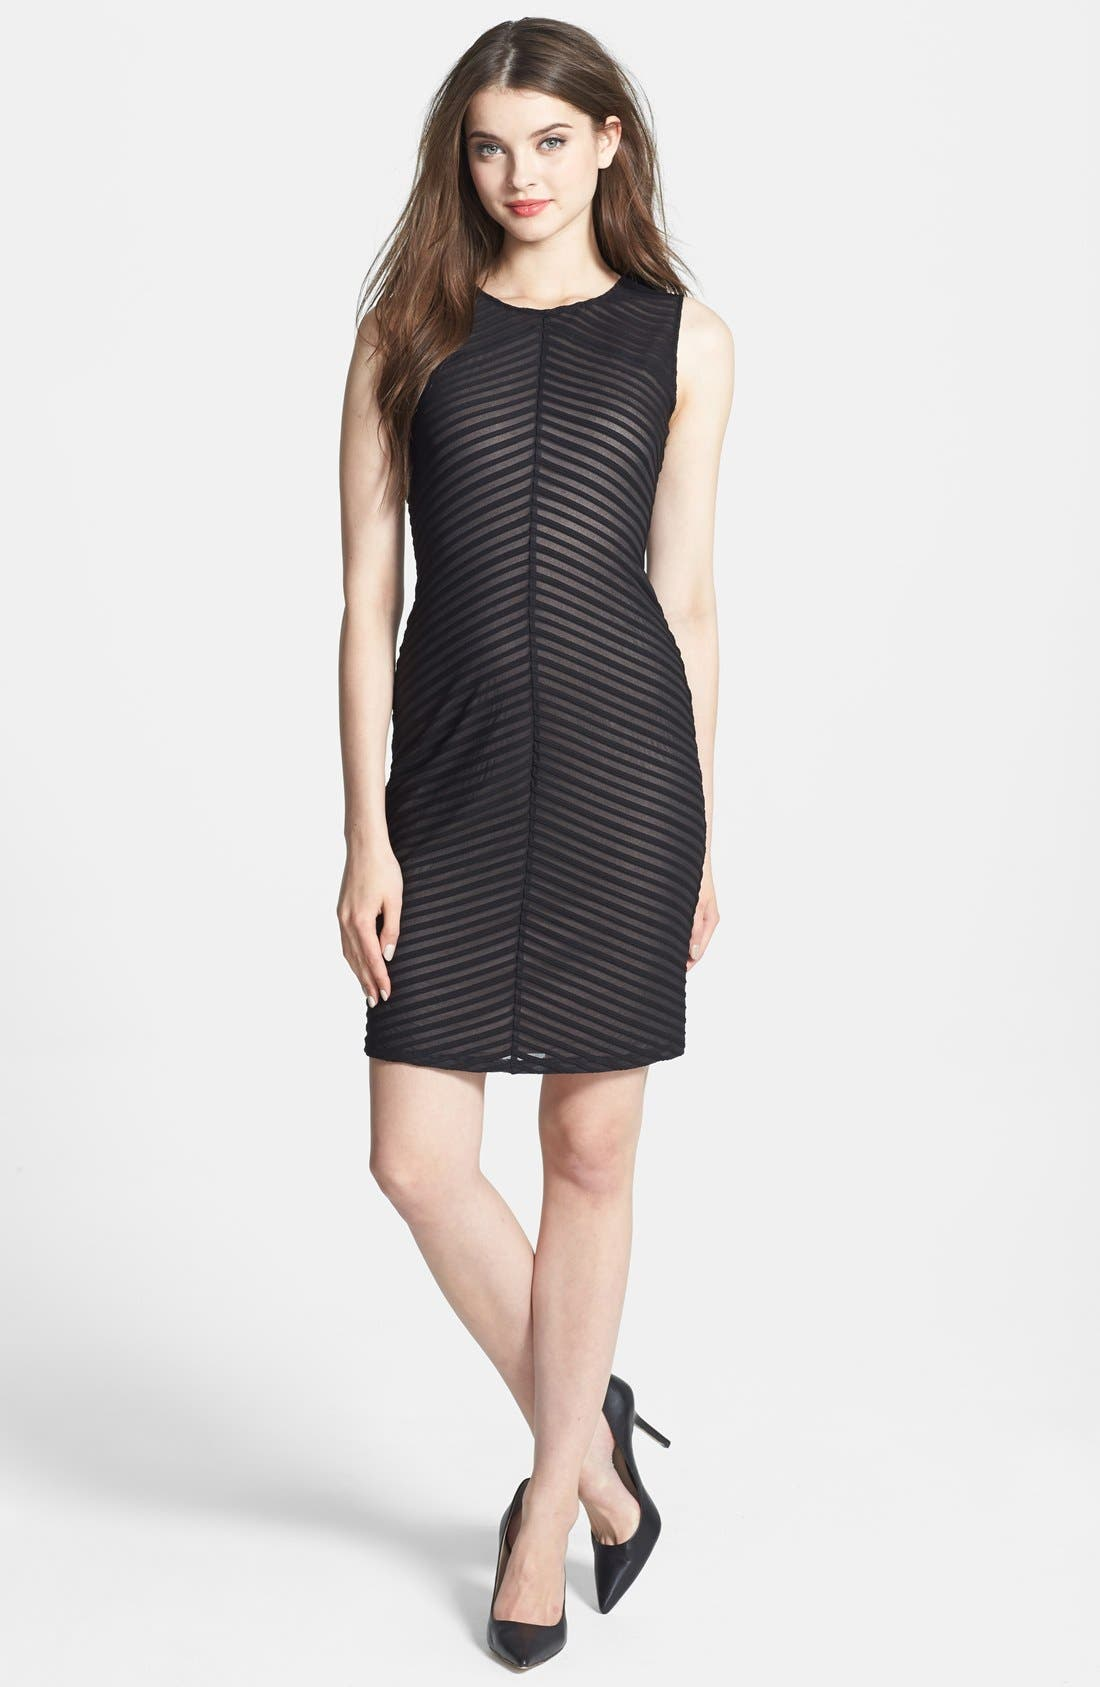 Alternate Image 1 Selected - Calvin Klein Contrast Lined Stretch Knit Sheath Dress